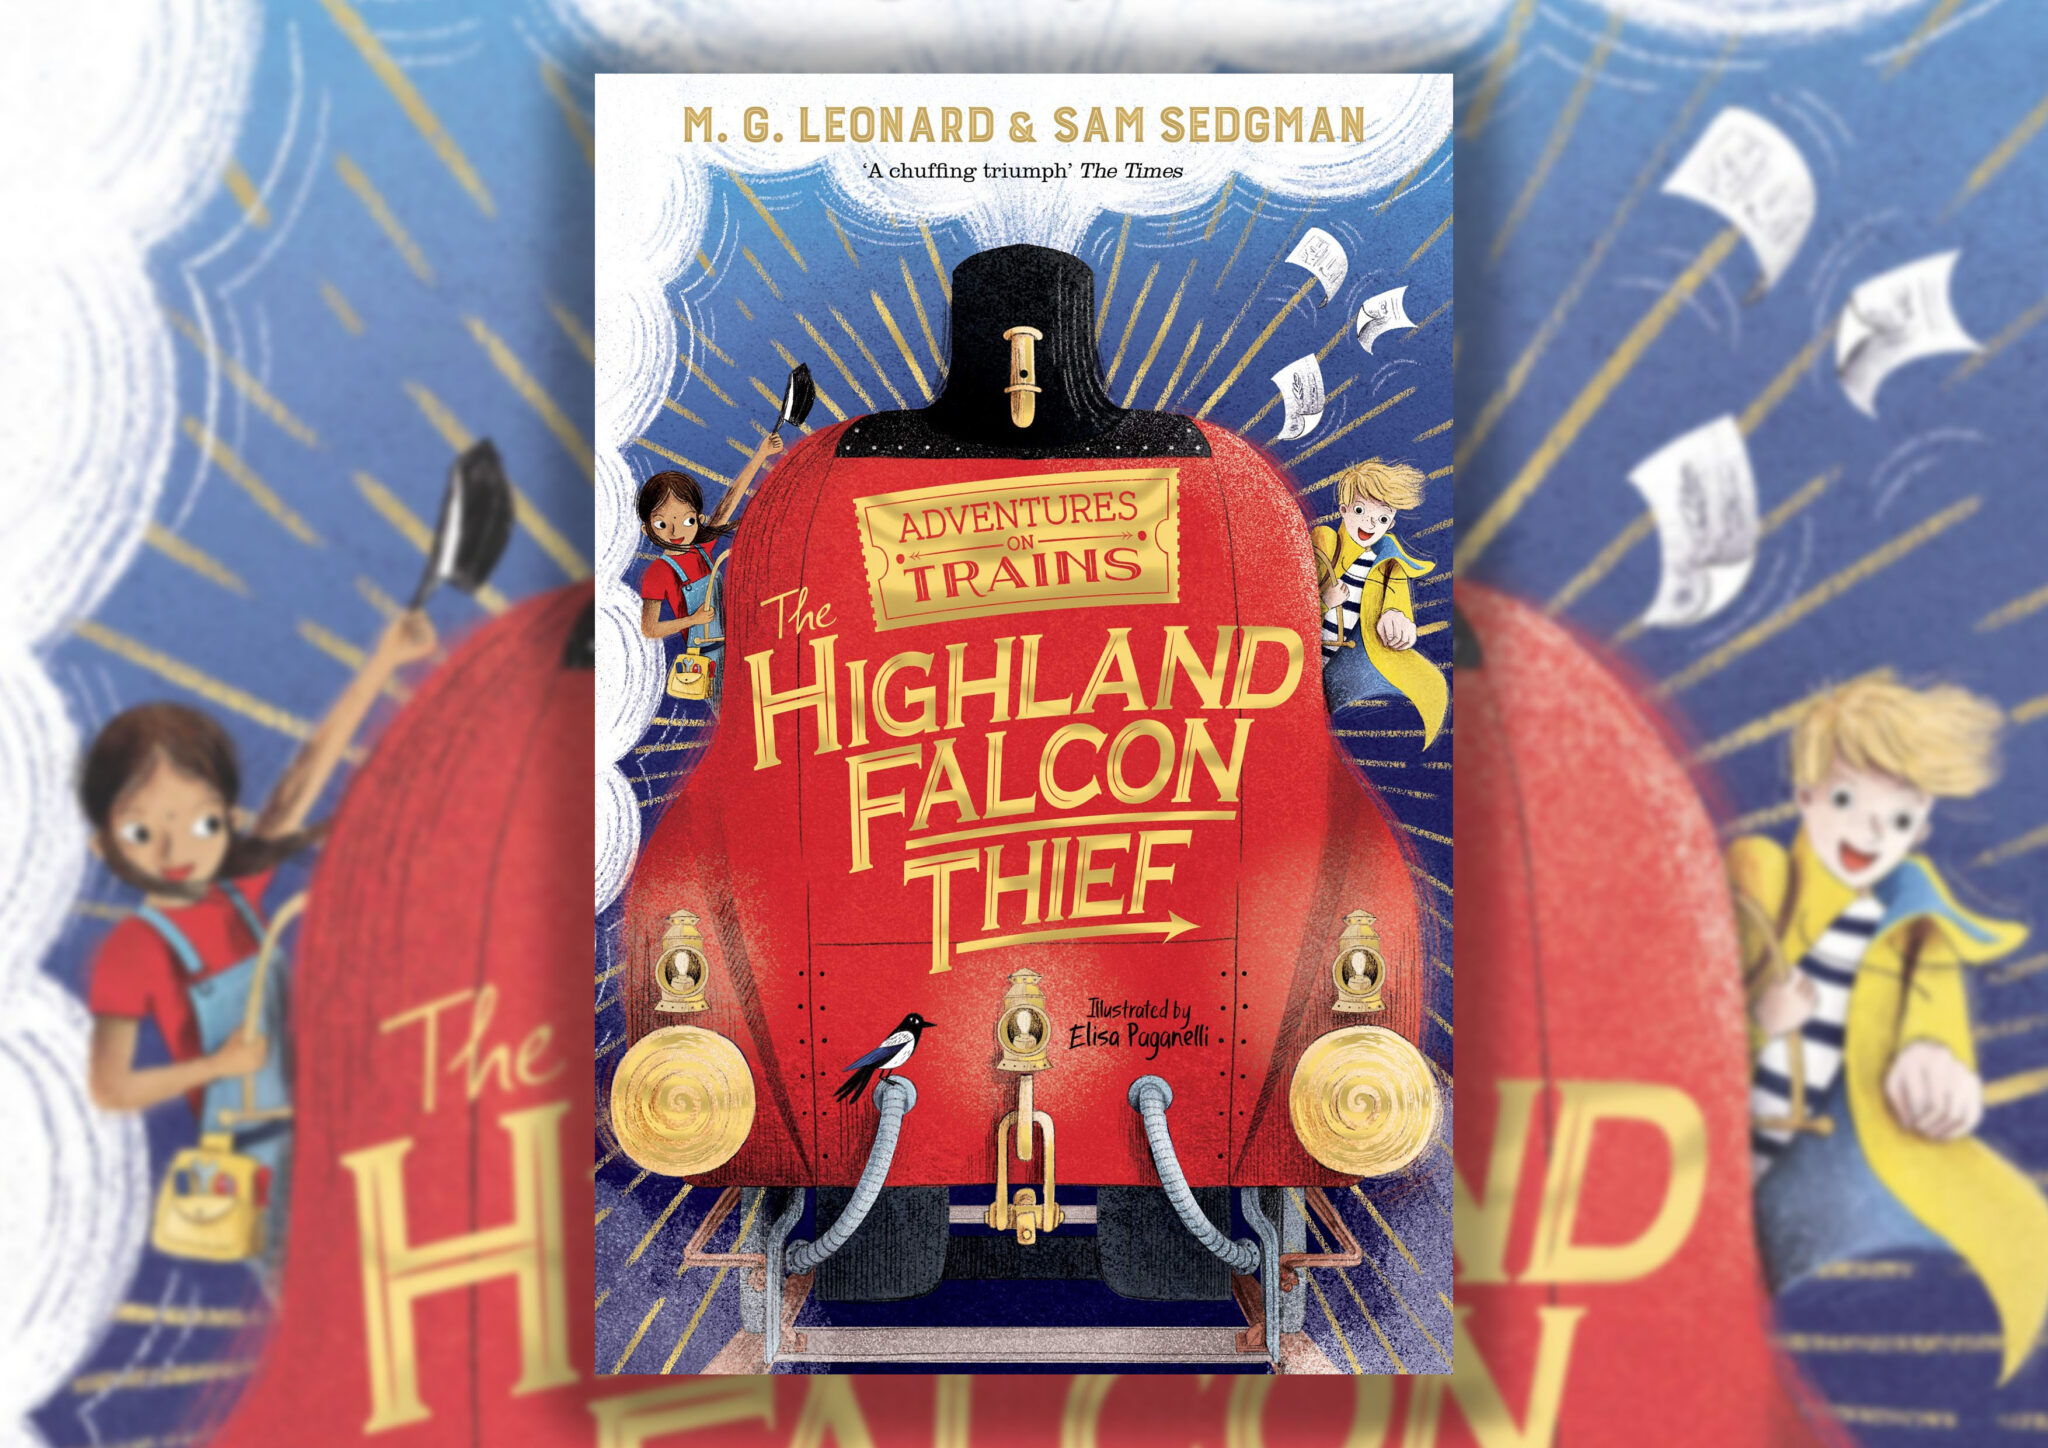 The book cover for The Highland Falcon Thief on a blurred background. The cover has a red steam train on the front, with two of the characters holding onto the sides.